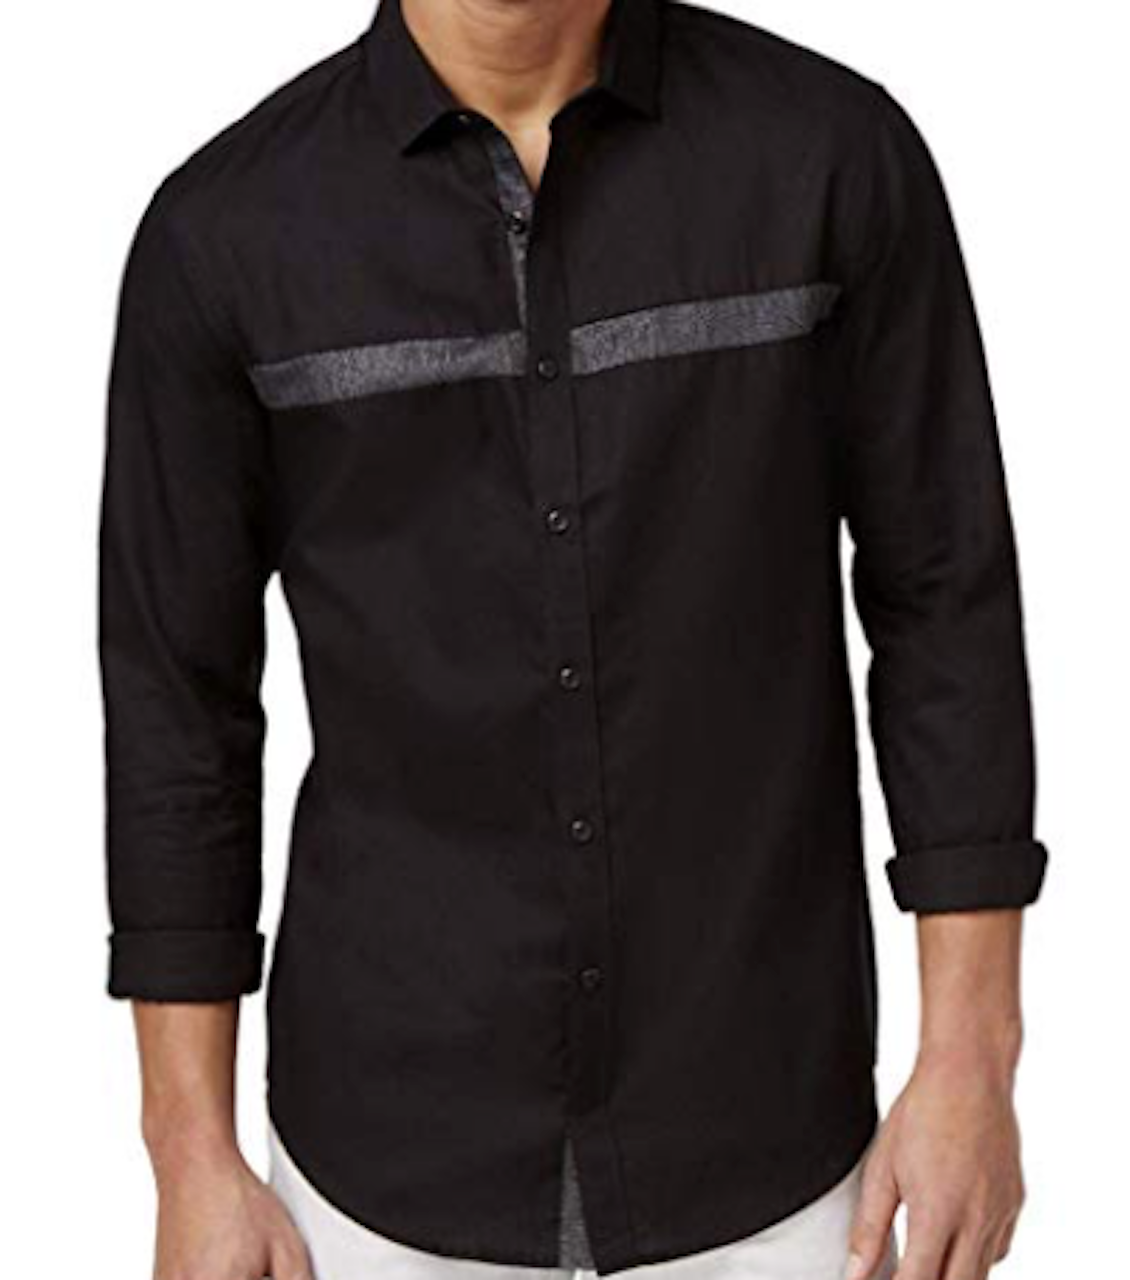 INC Mens Metallic Contrast Trim Button-Down Shirt, Black, Medium